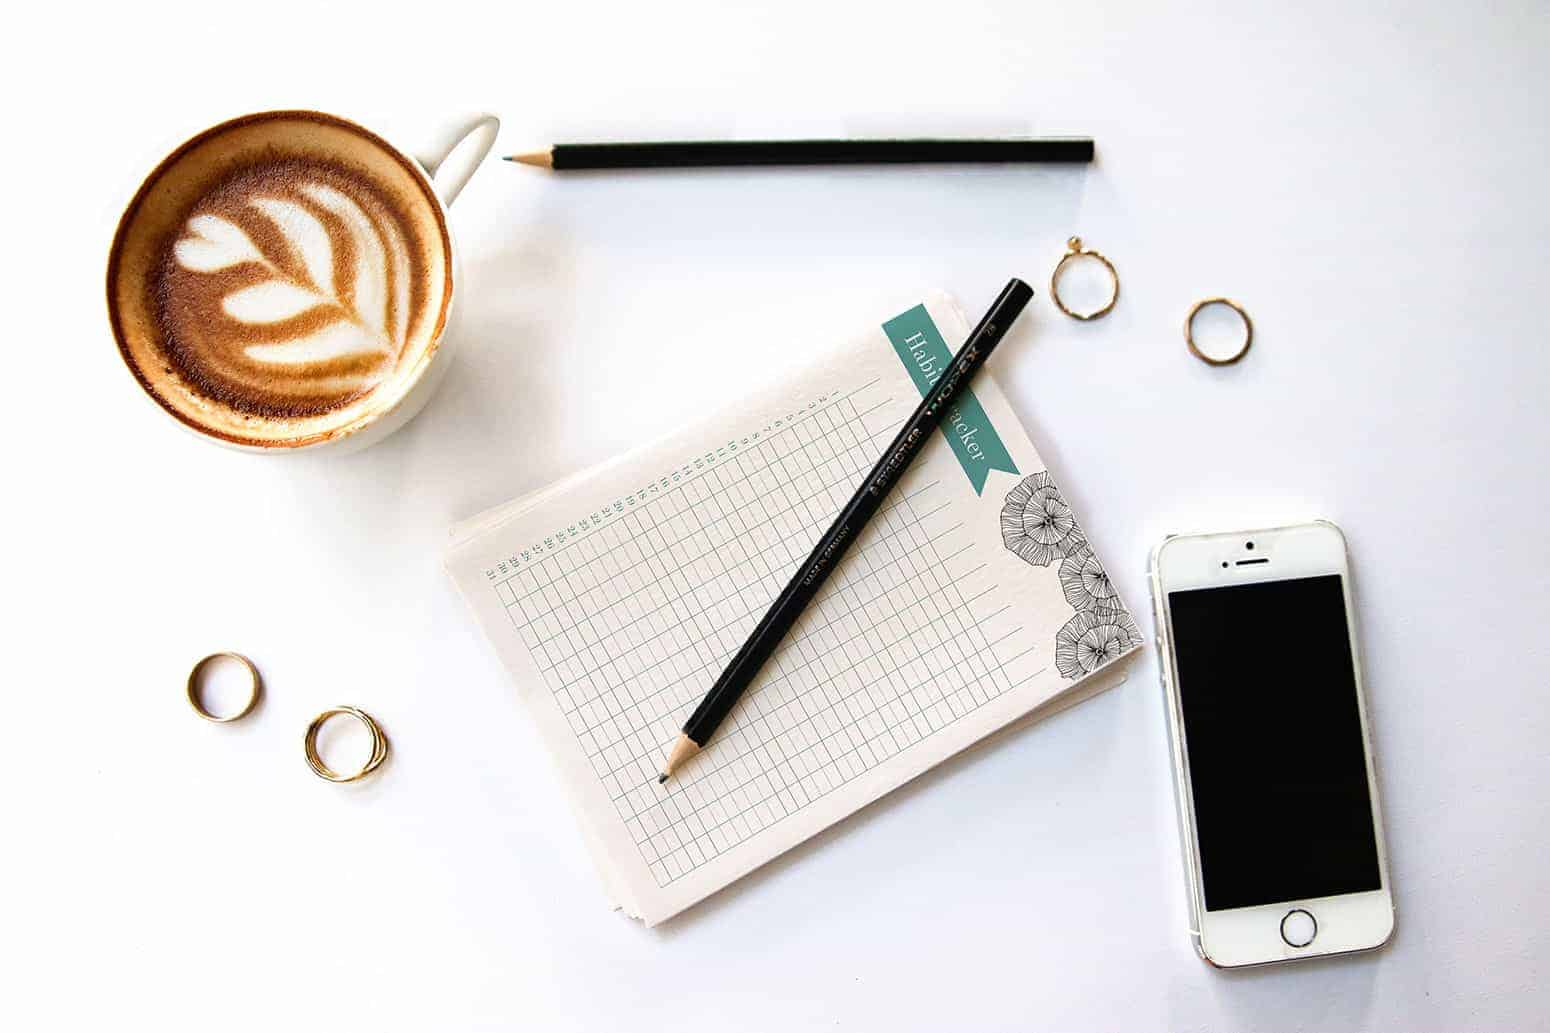 Habit Tracker on a Table with a Coffee and Phone